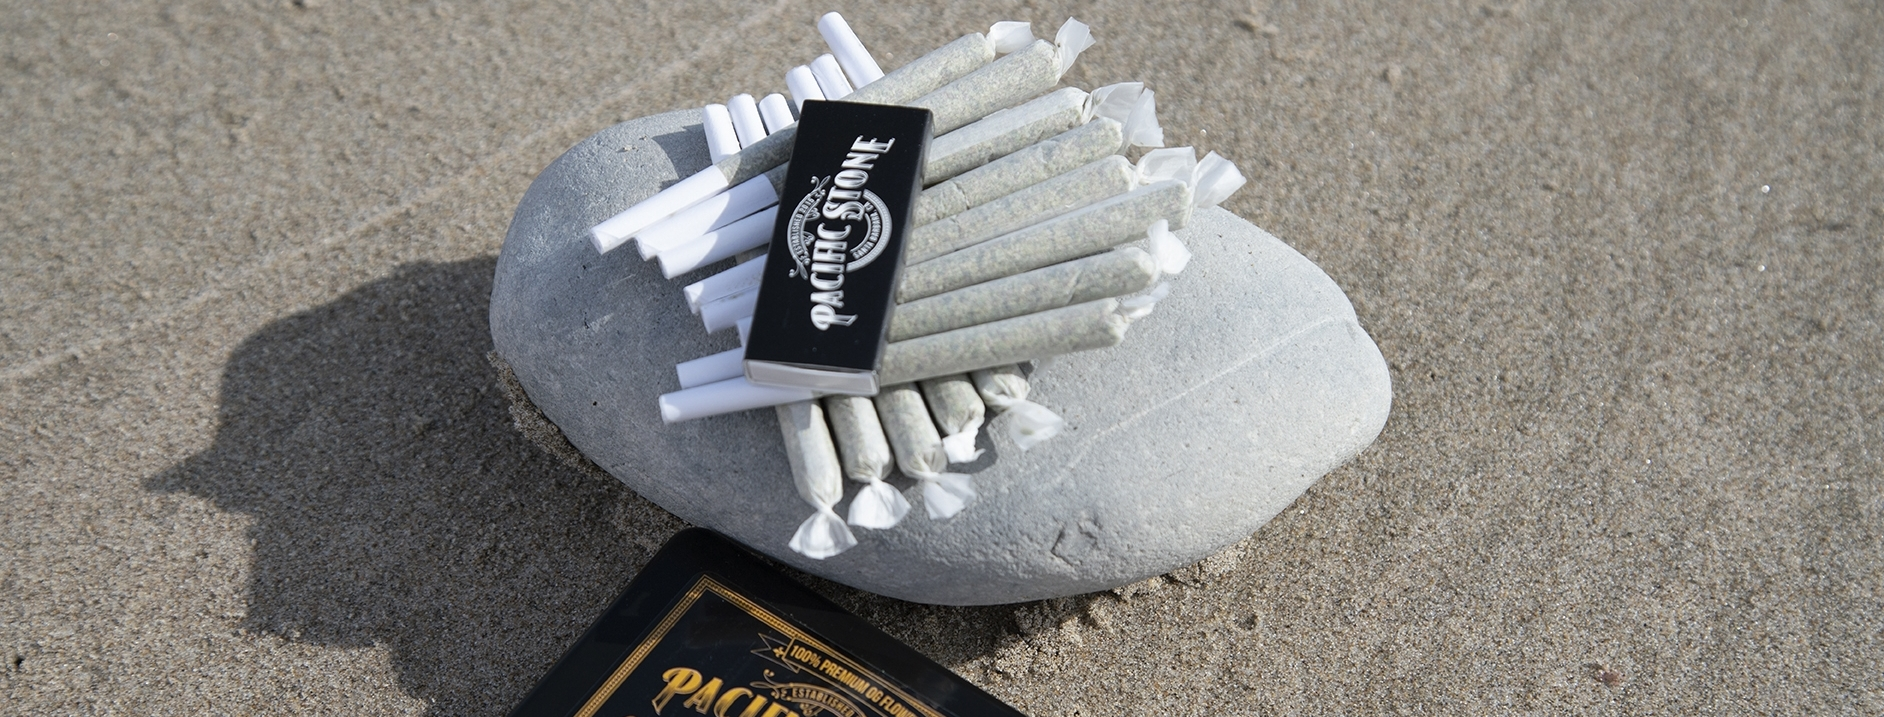 joints on rock.jpg